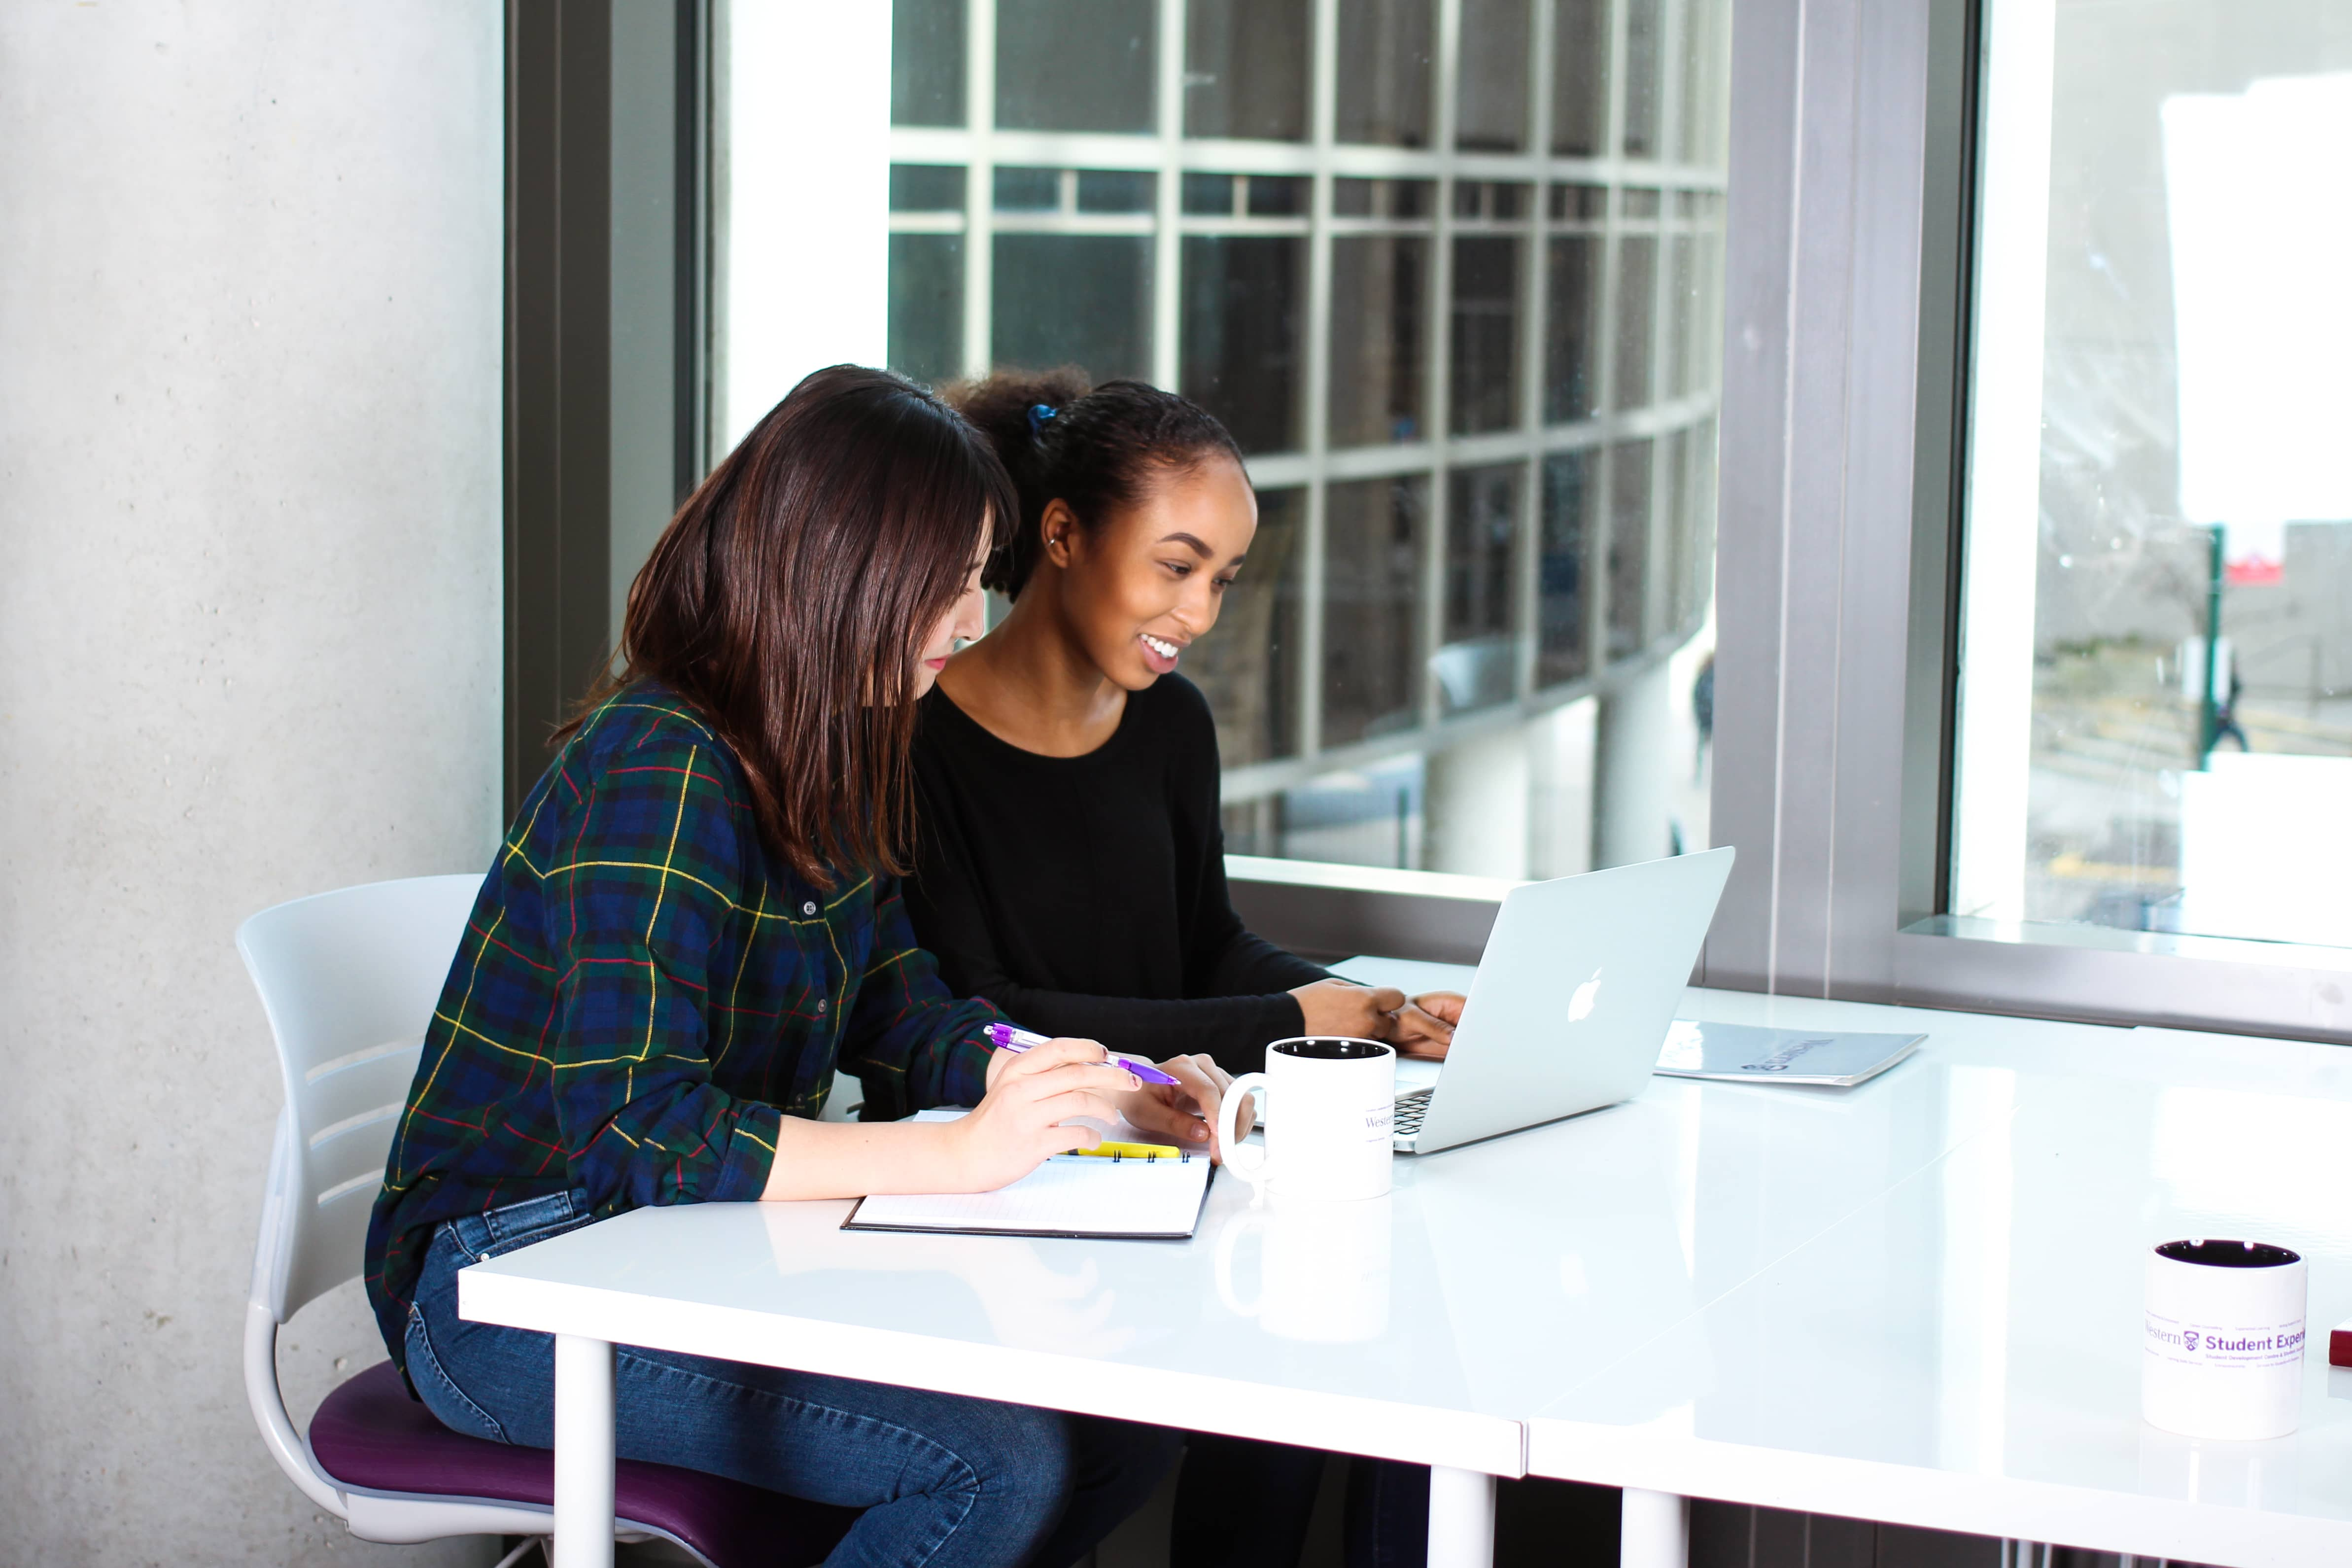 Two students work together at a laptop